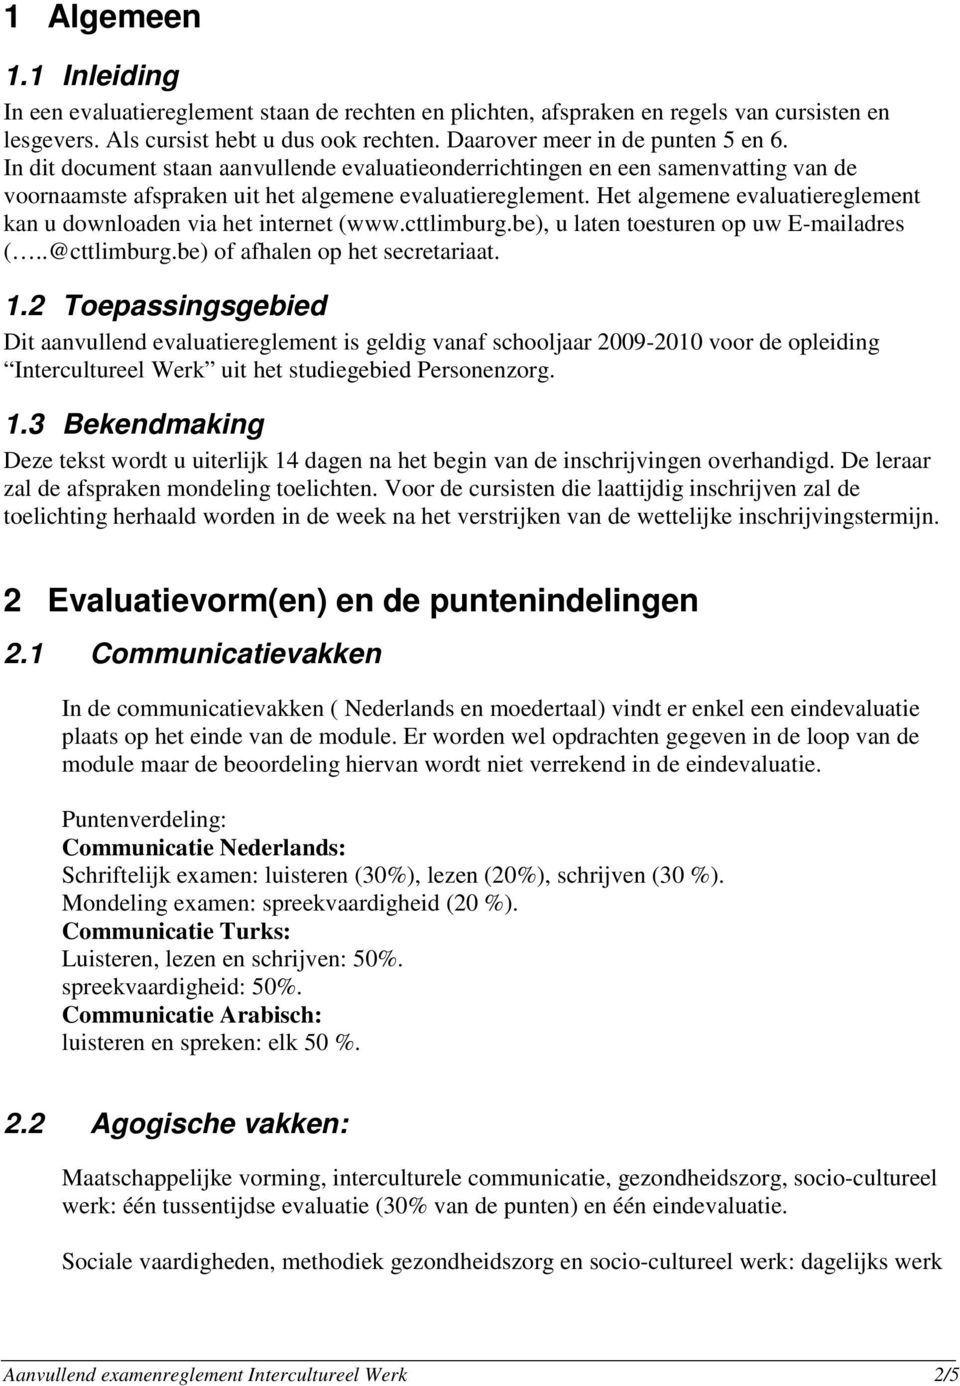 Het algemene evaluatiereglement kan u downloaden via het internet (www.cttlimburg.be), u laten toesturen op uw E-mailadres (..@cttlimburg.be) of afhalen op het secretariaat. 1.